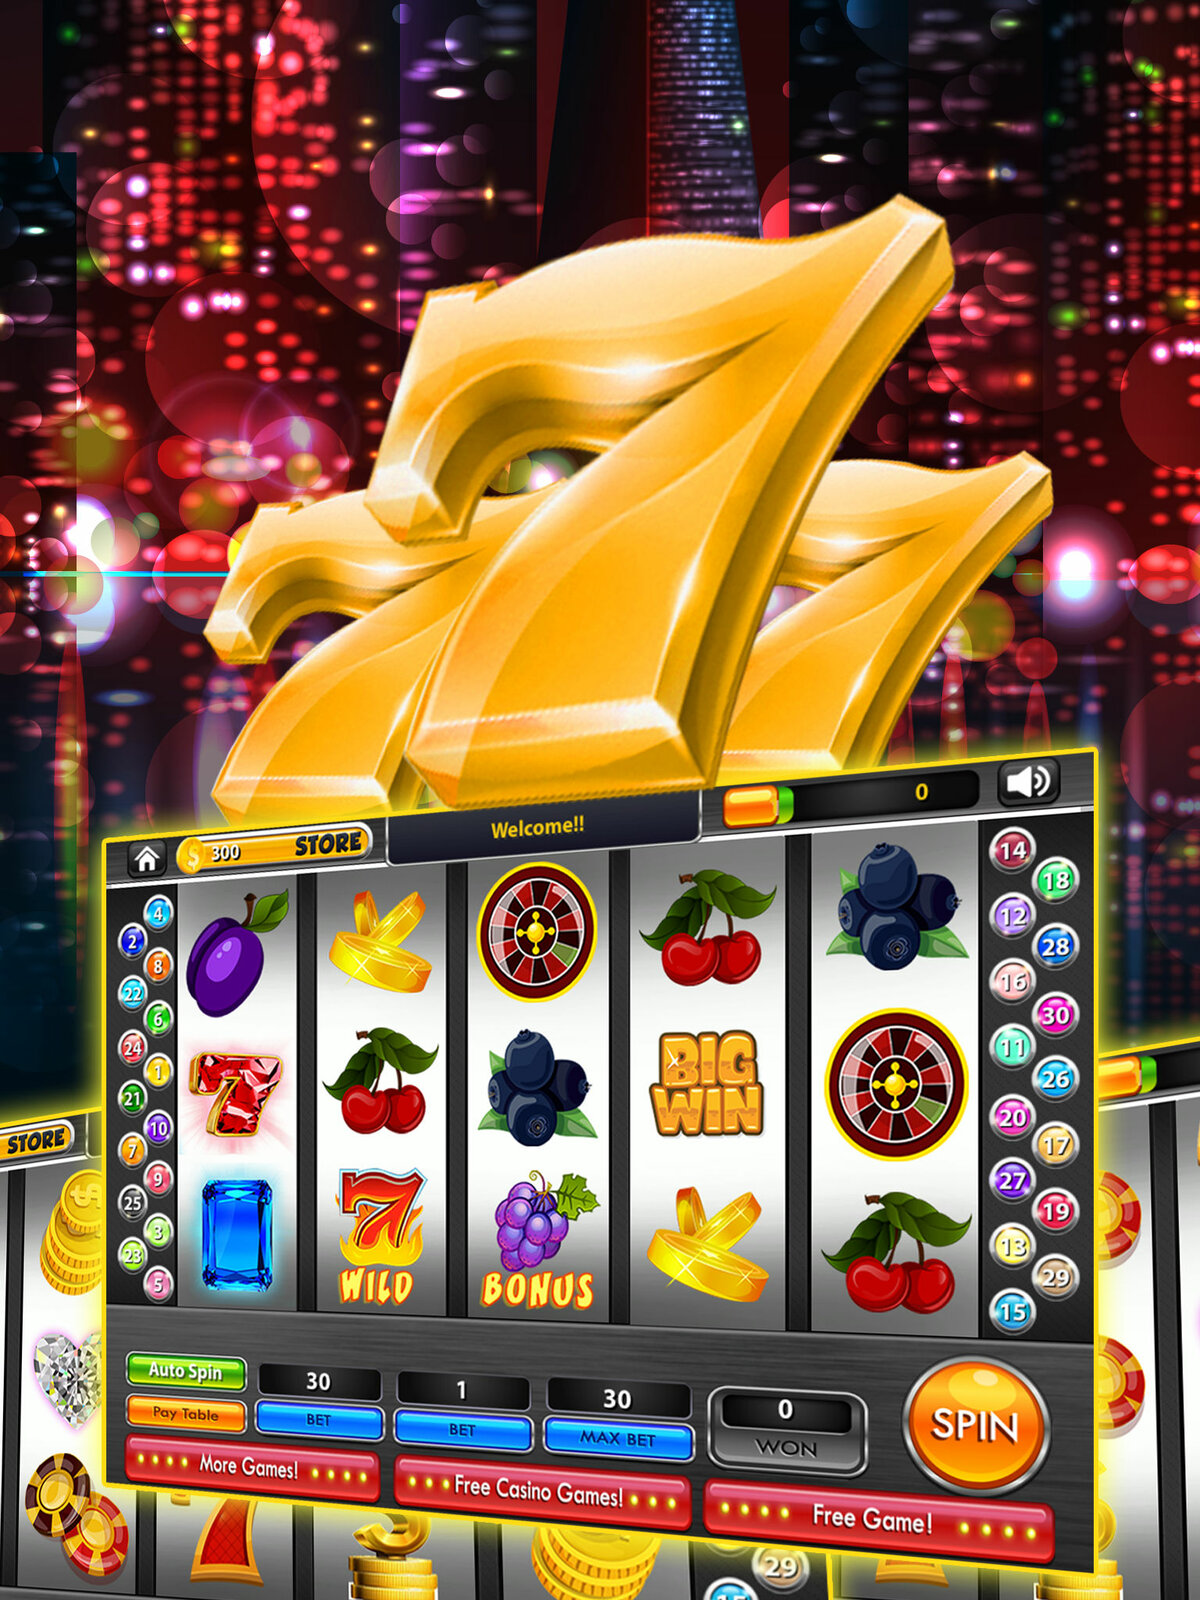 How to hit the jackpot at an online casino?